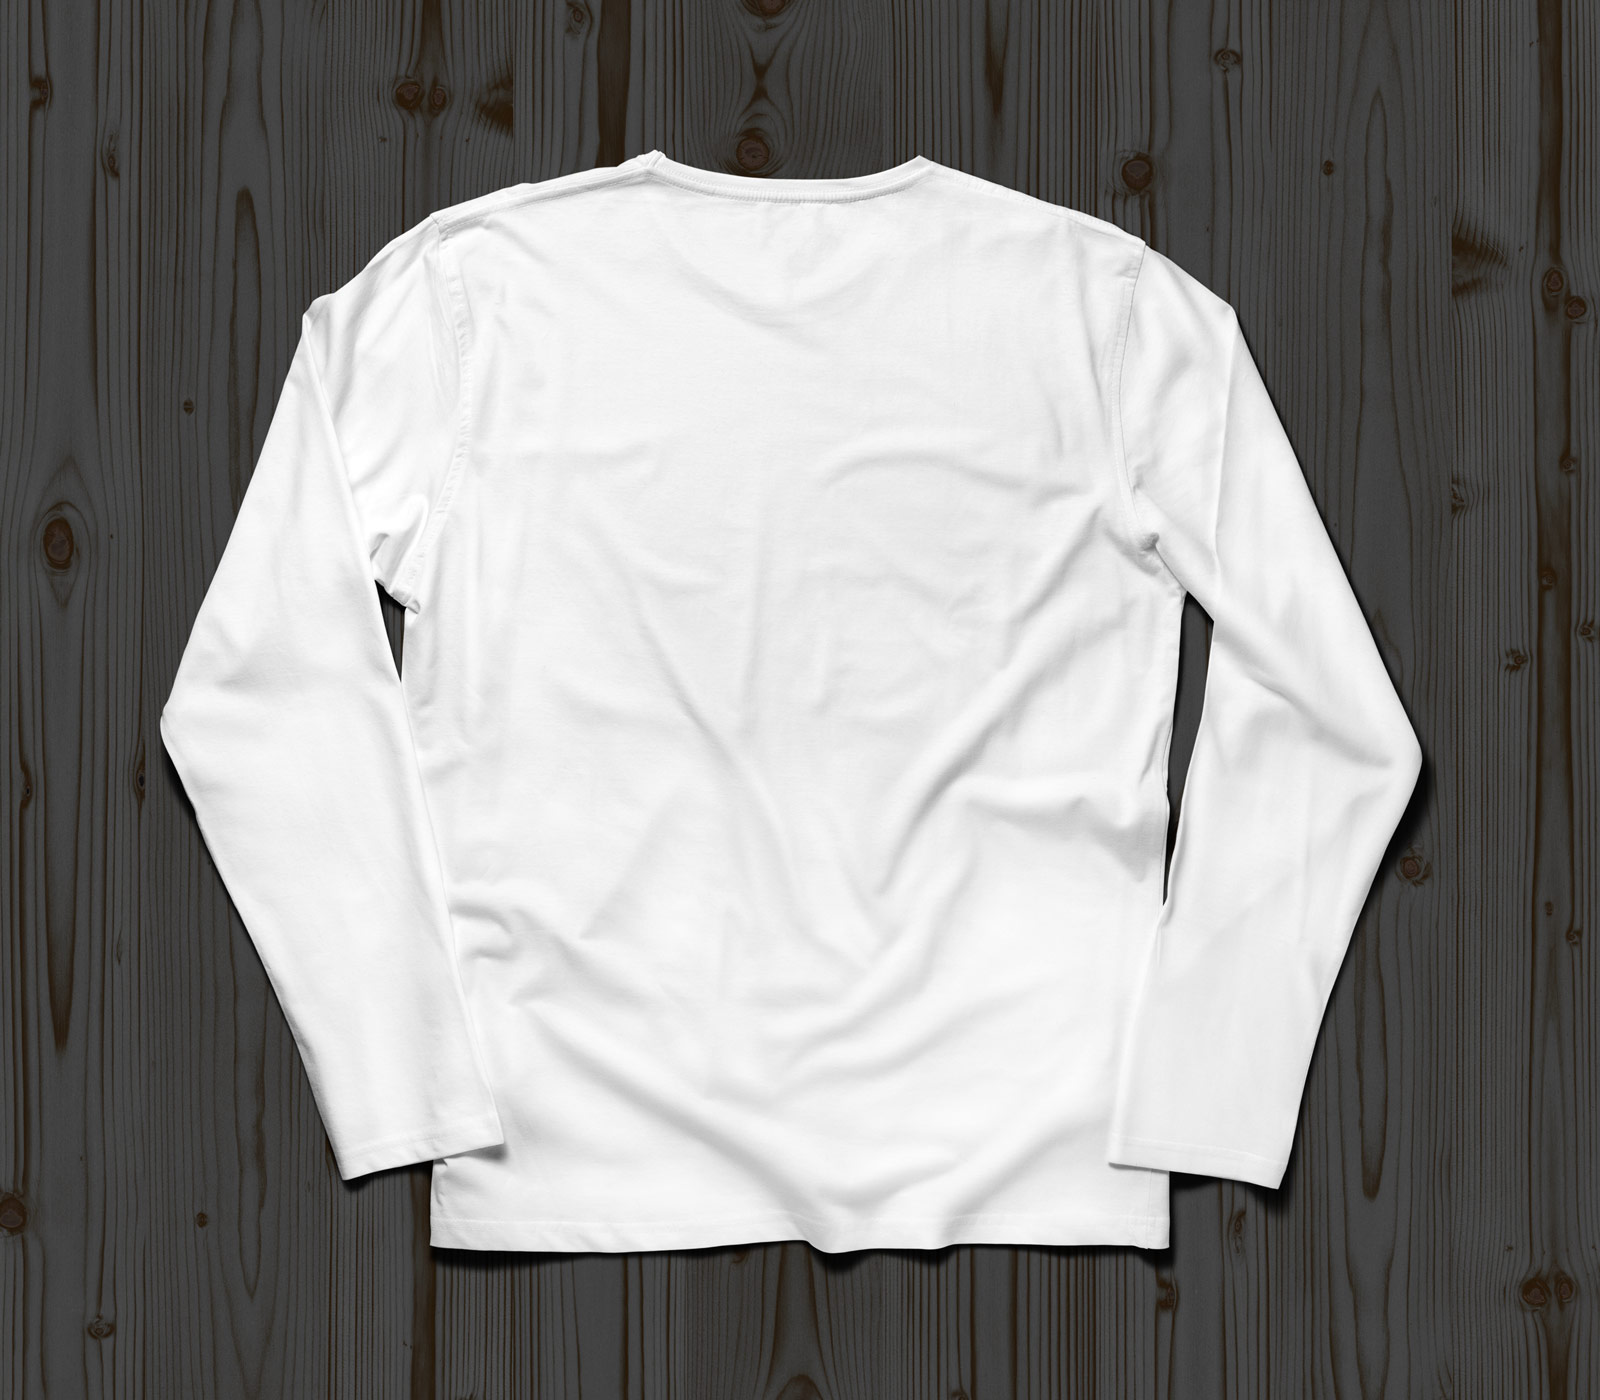 Free full sleeves t shirt mockup psd front back good mockups for Blank t shirt mockup